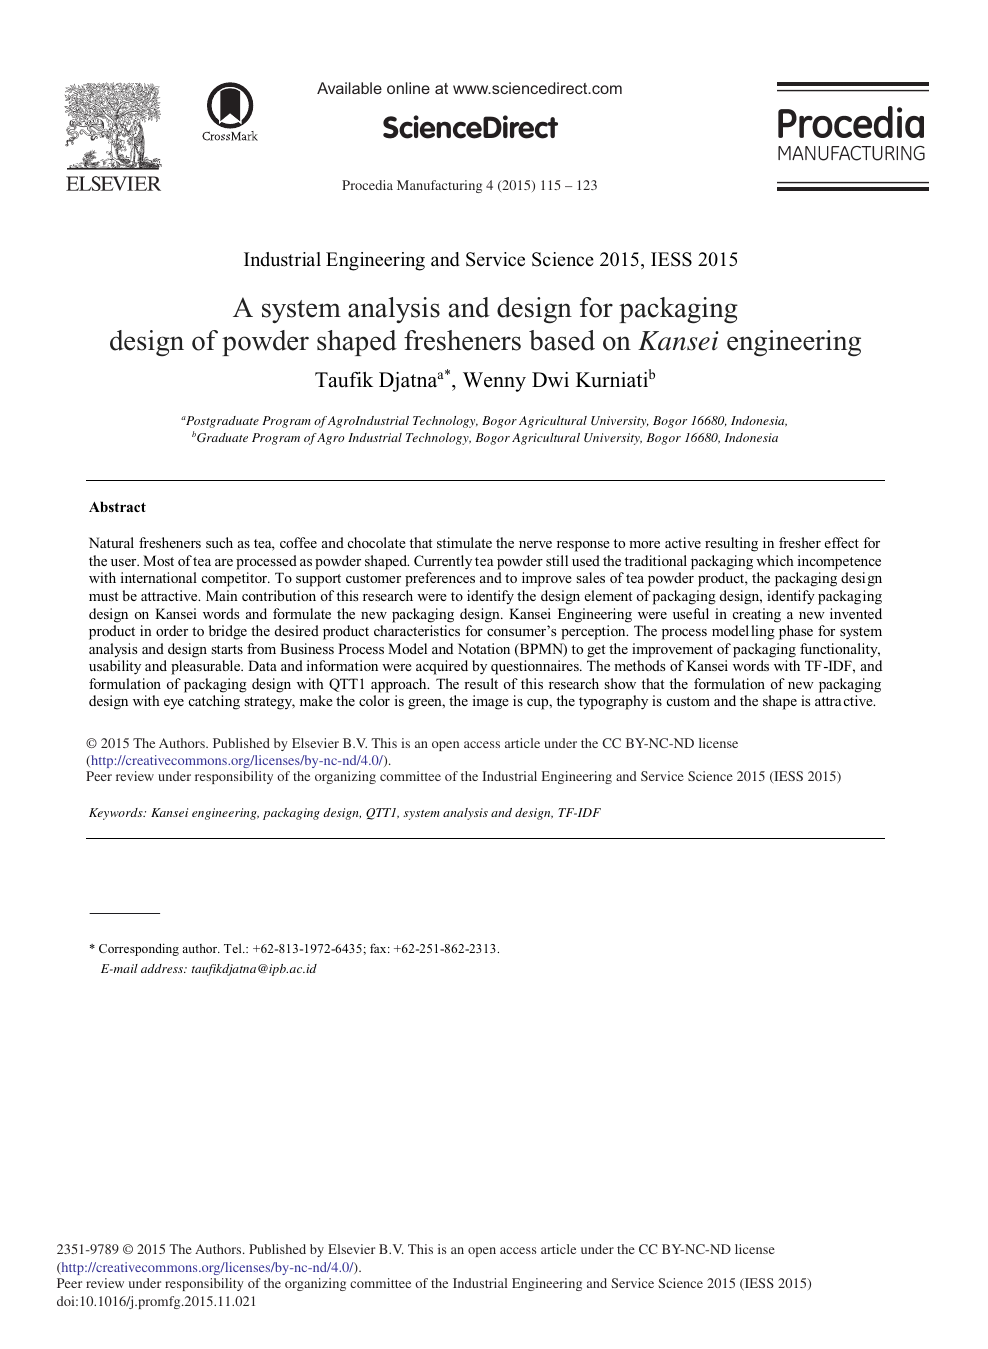 A System Analysis And Design For Packaging Design Of Powder Shaped Fresheners Based On Kansei Engineering Topic Of Research Paper In Civil Engineering Download Scholarly Article Pdf And Read For Free